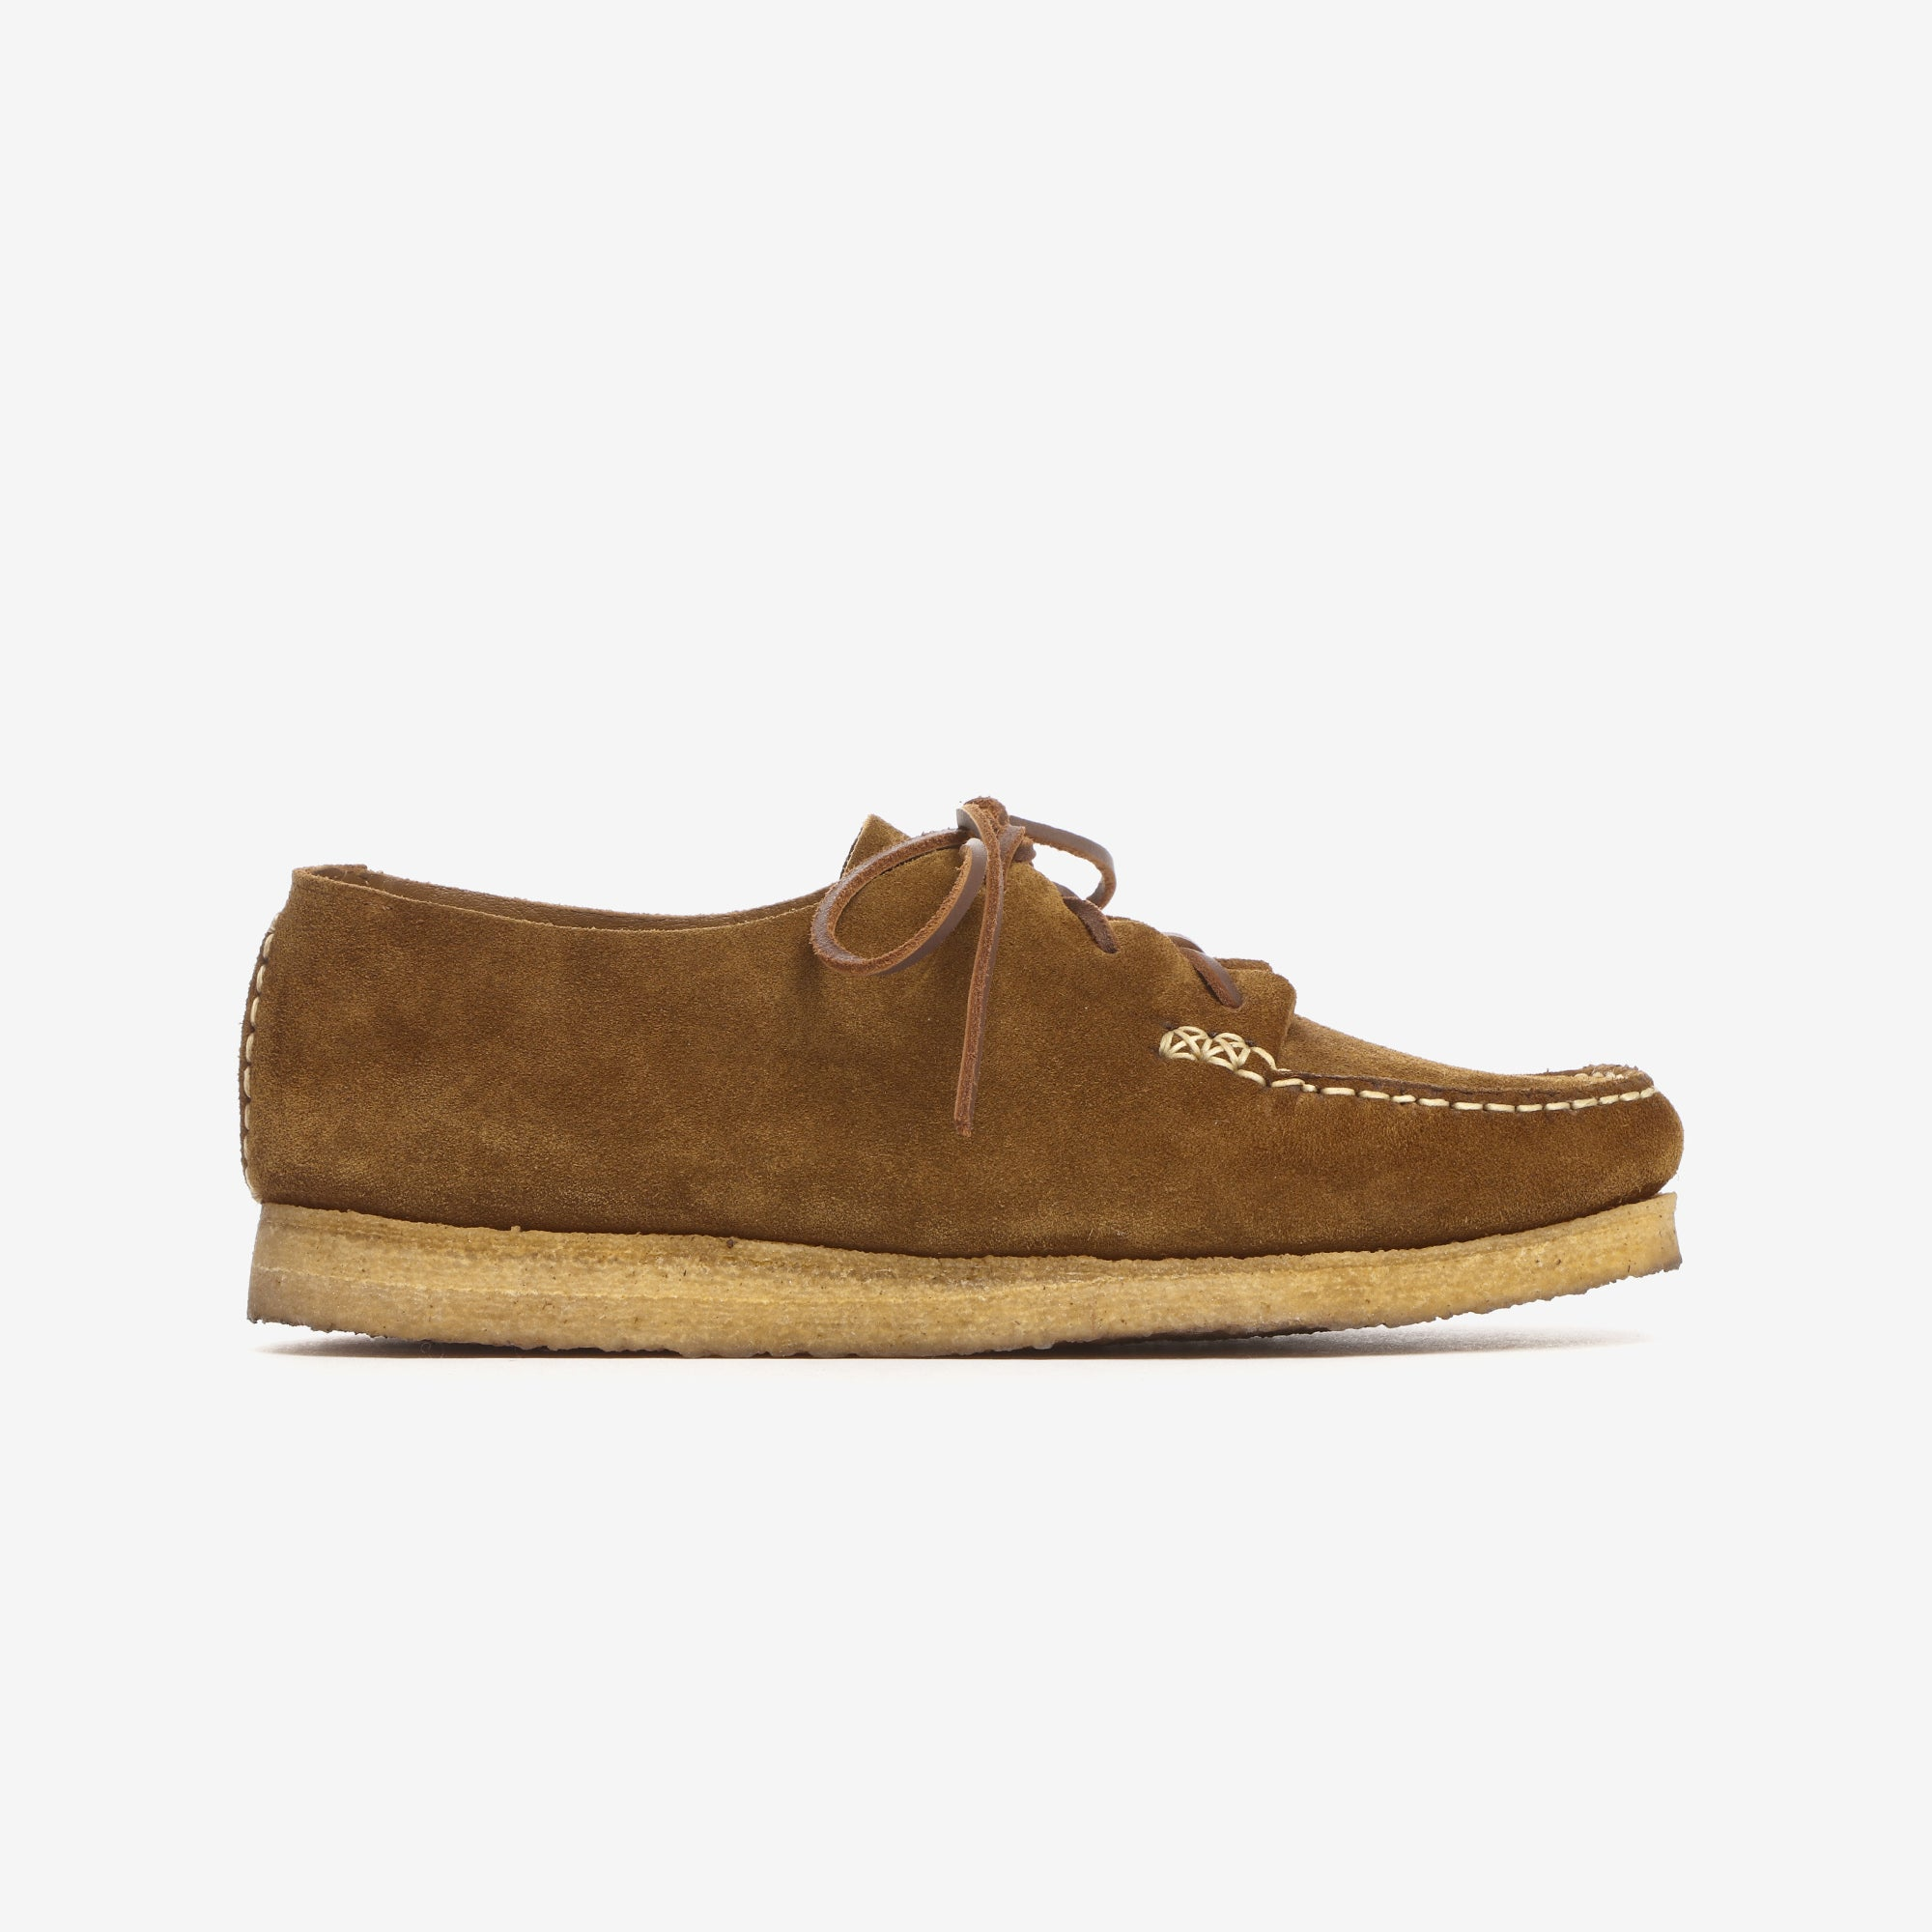 Suede Wallabee Shoes